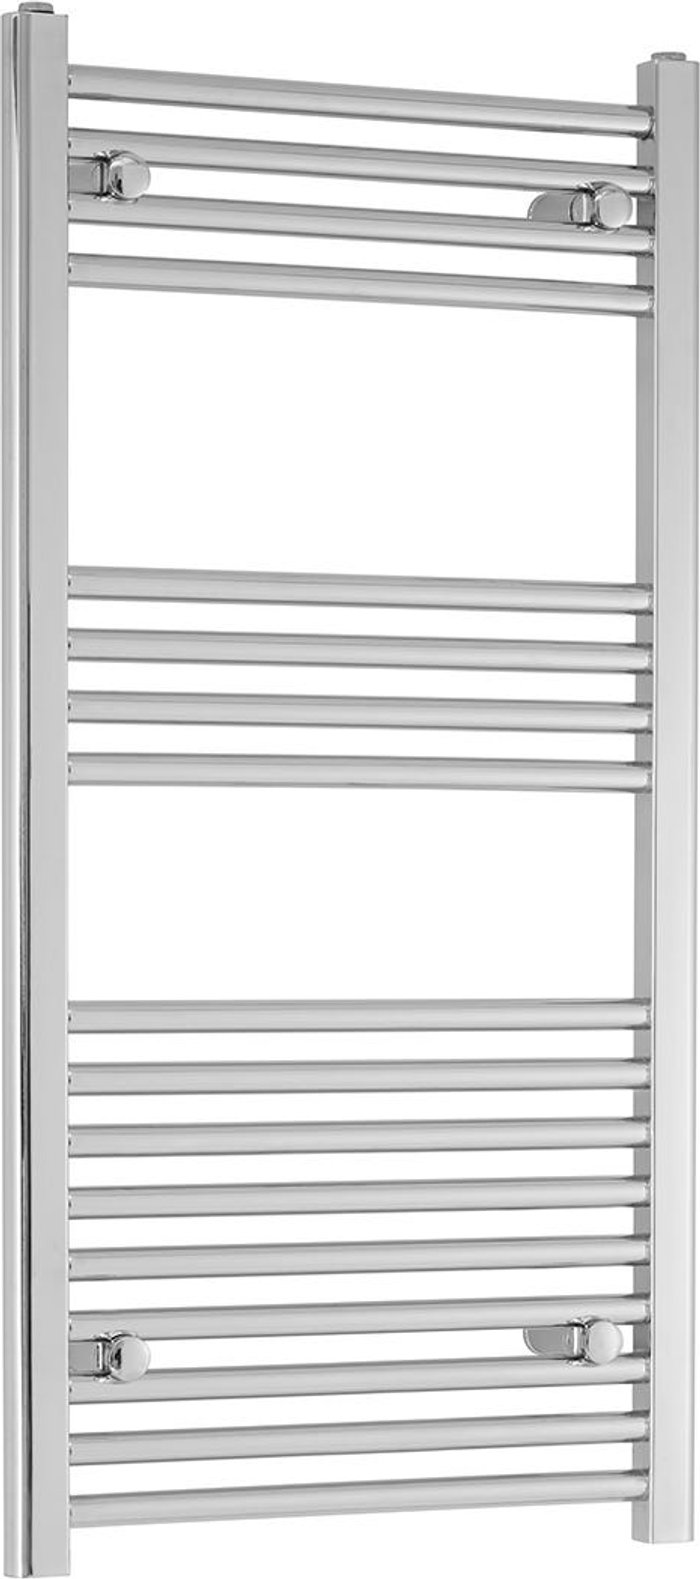 Towelrads Towelrads Heating Style Blythe Ladder Rail 1600x400mm Straight - Chrome